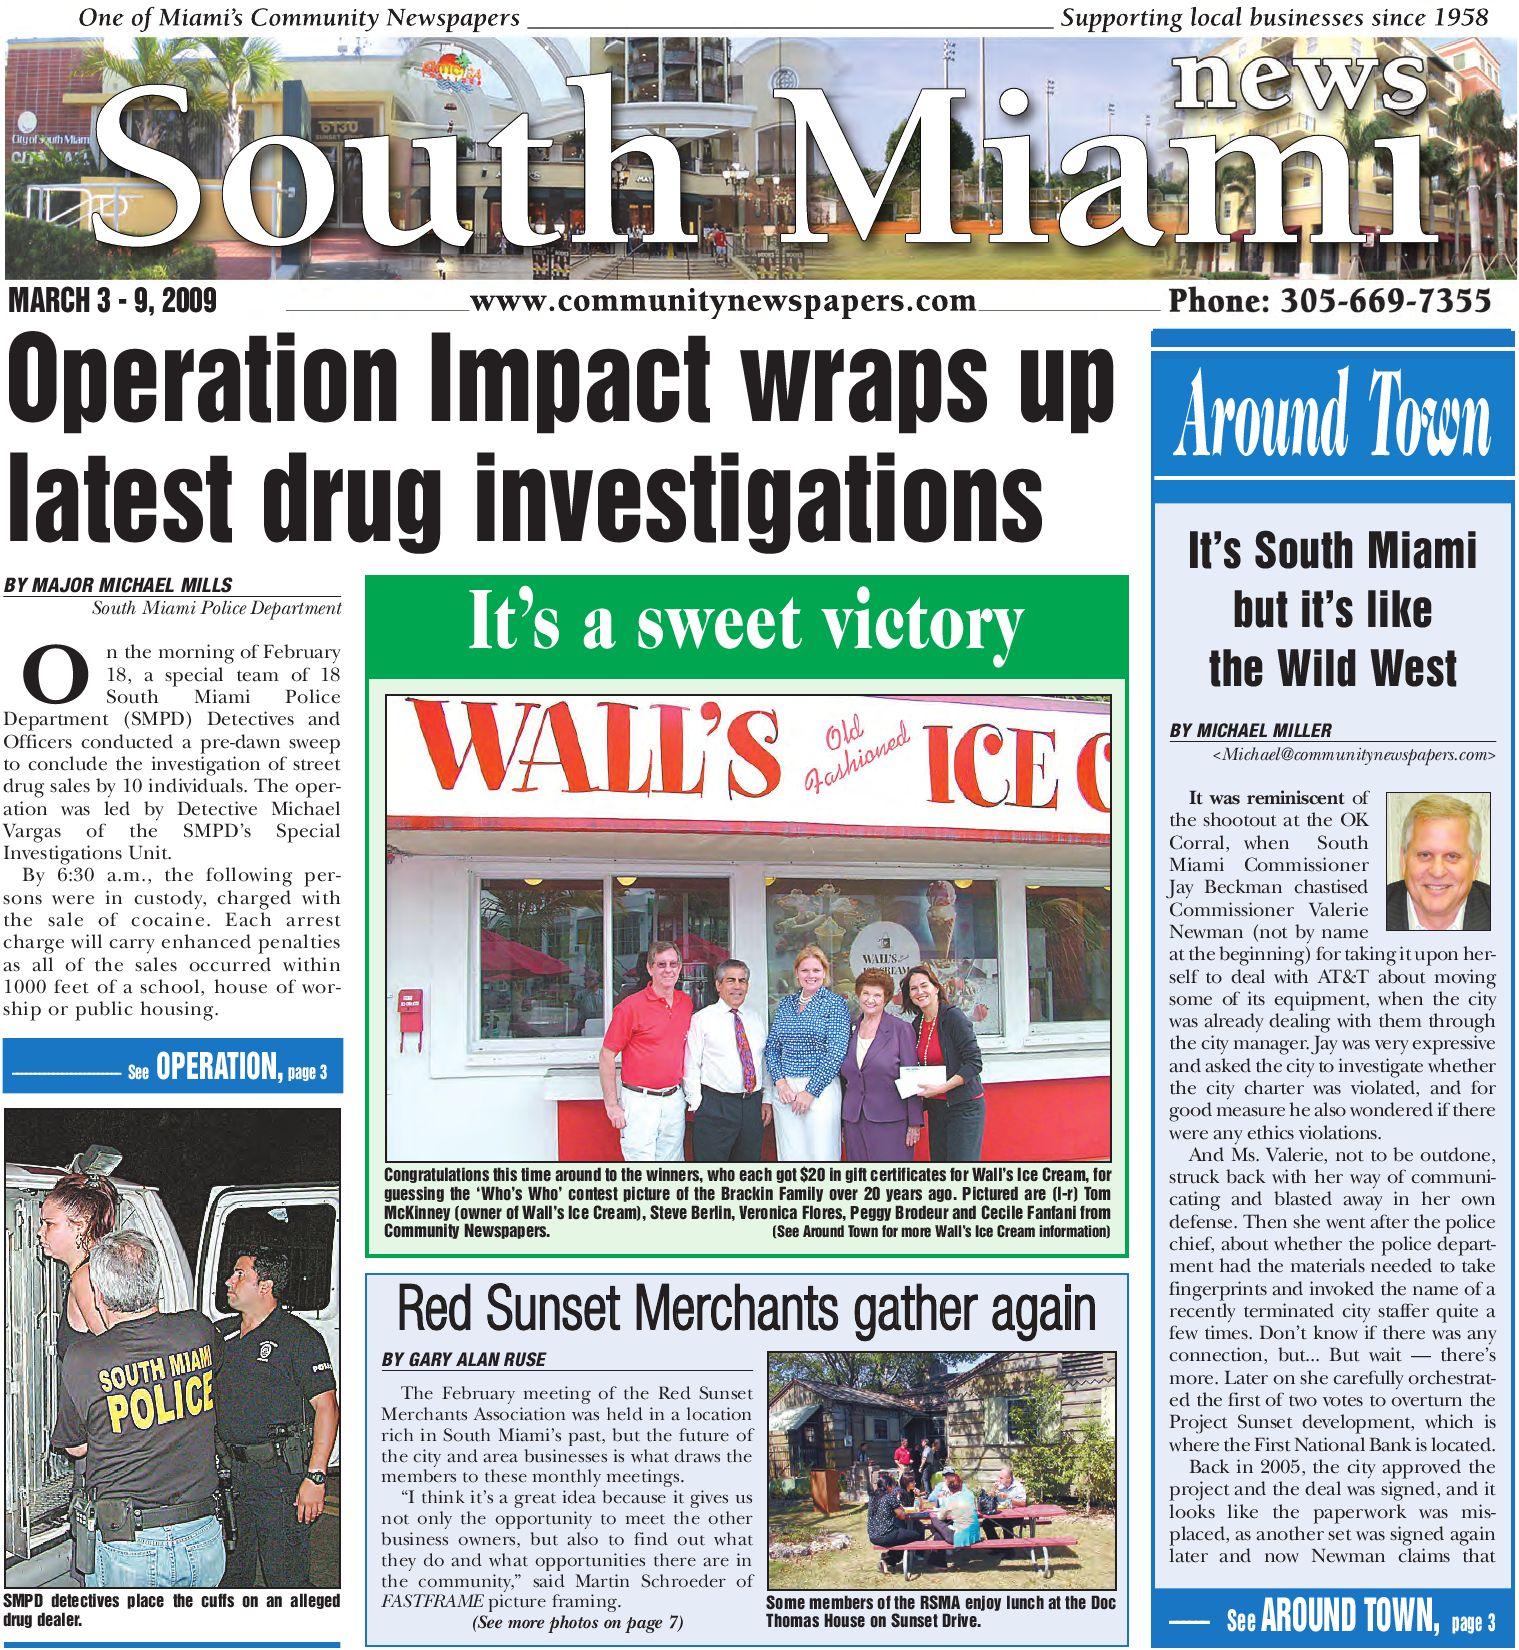 South Miami News - Online, March 3, 2009 Edition - Local